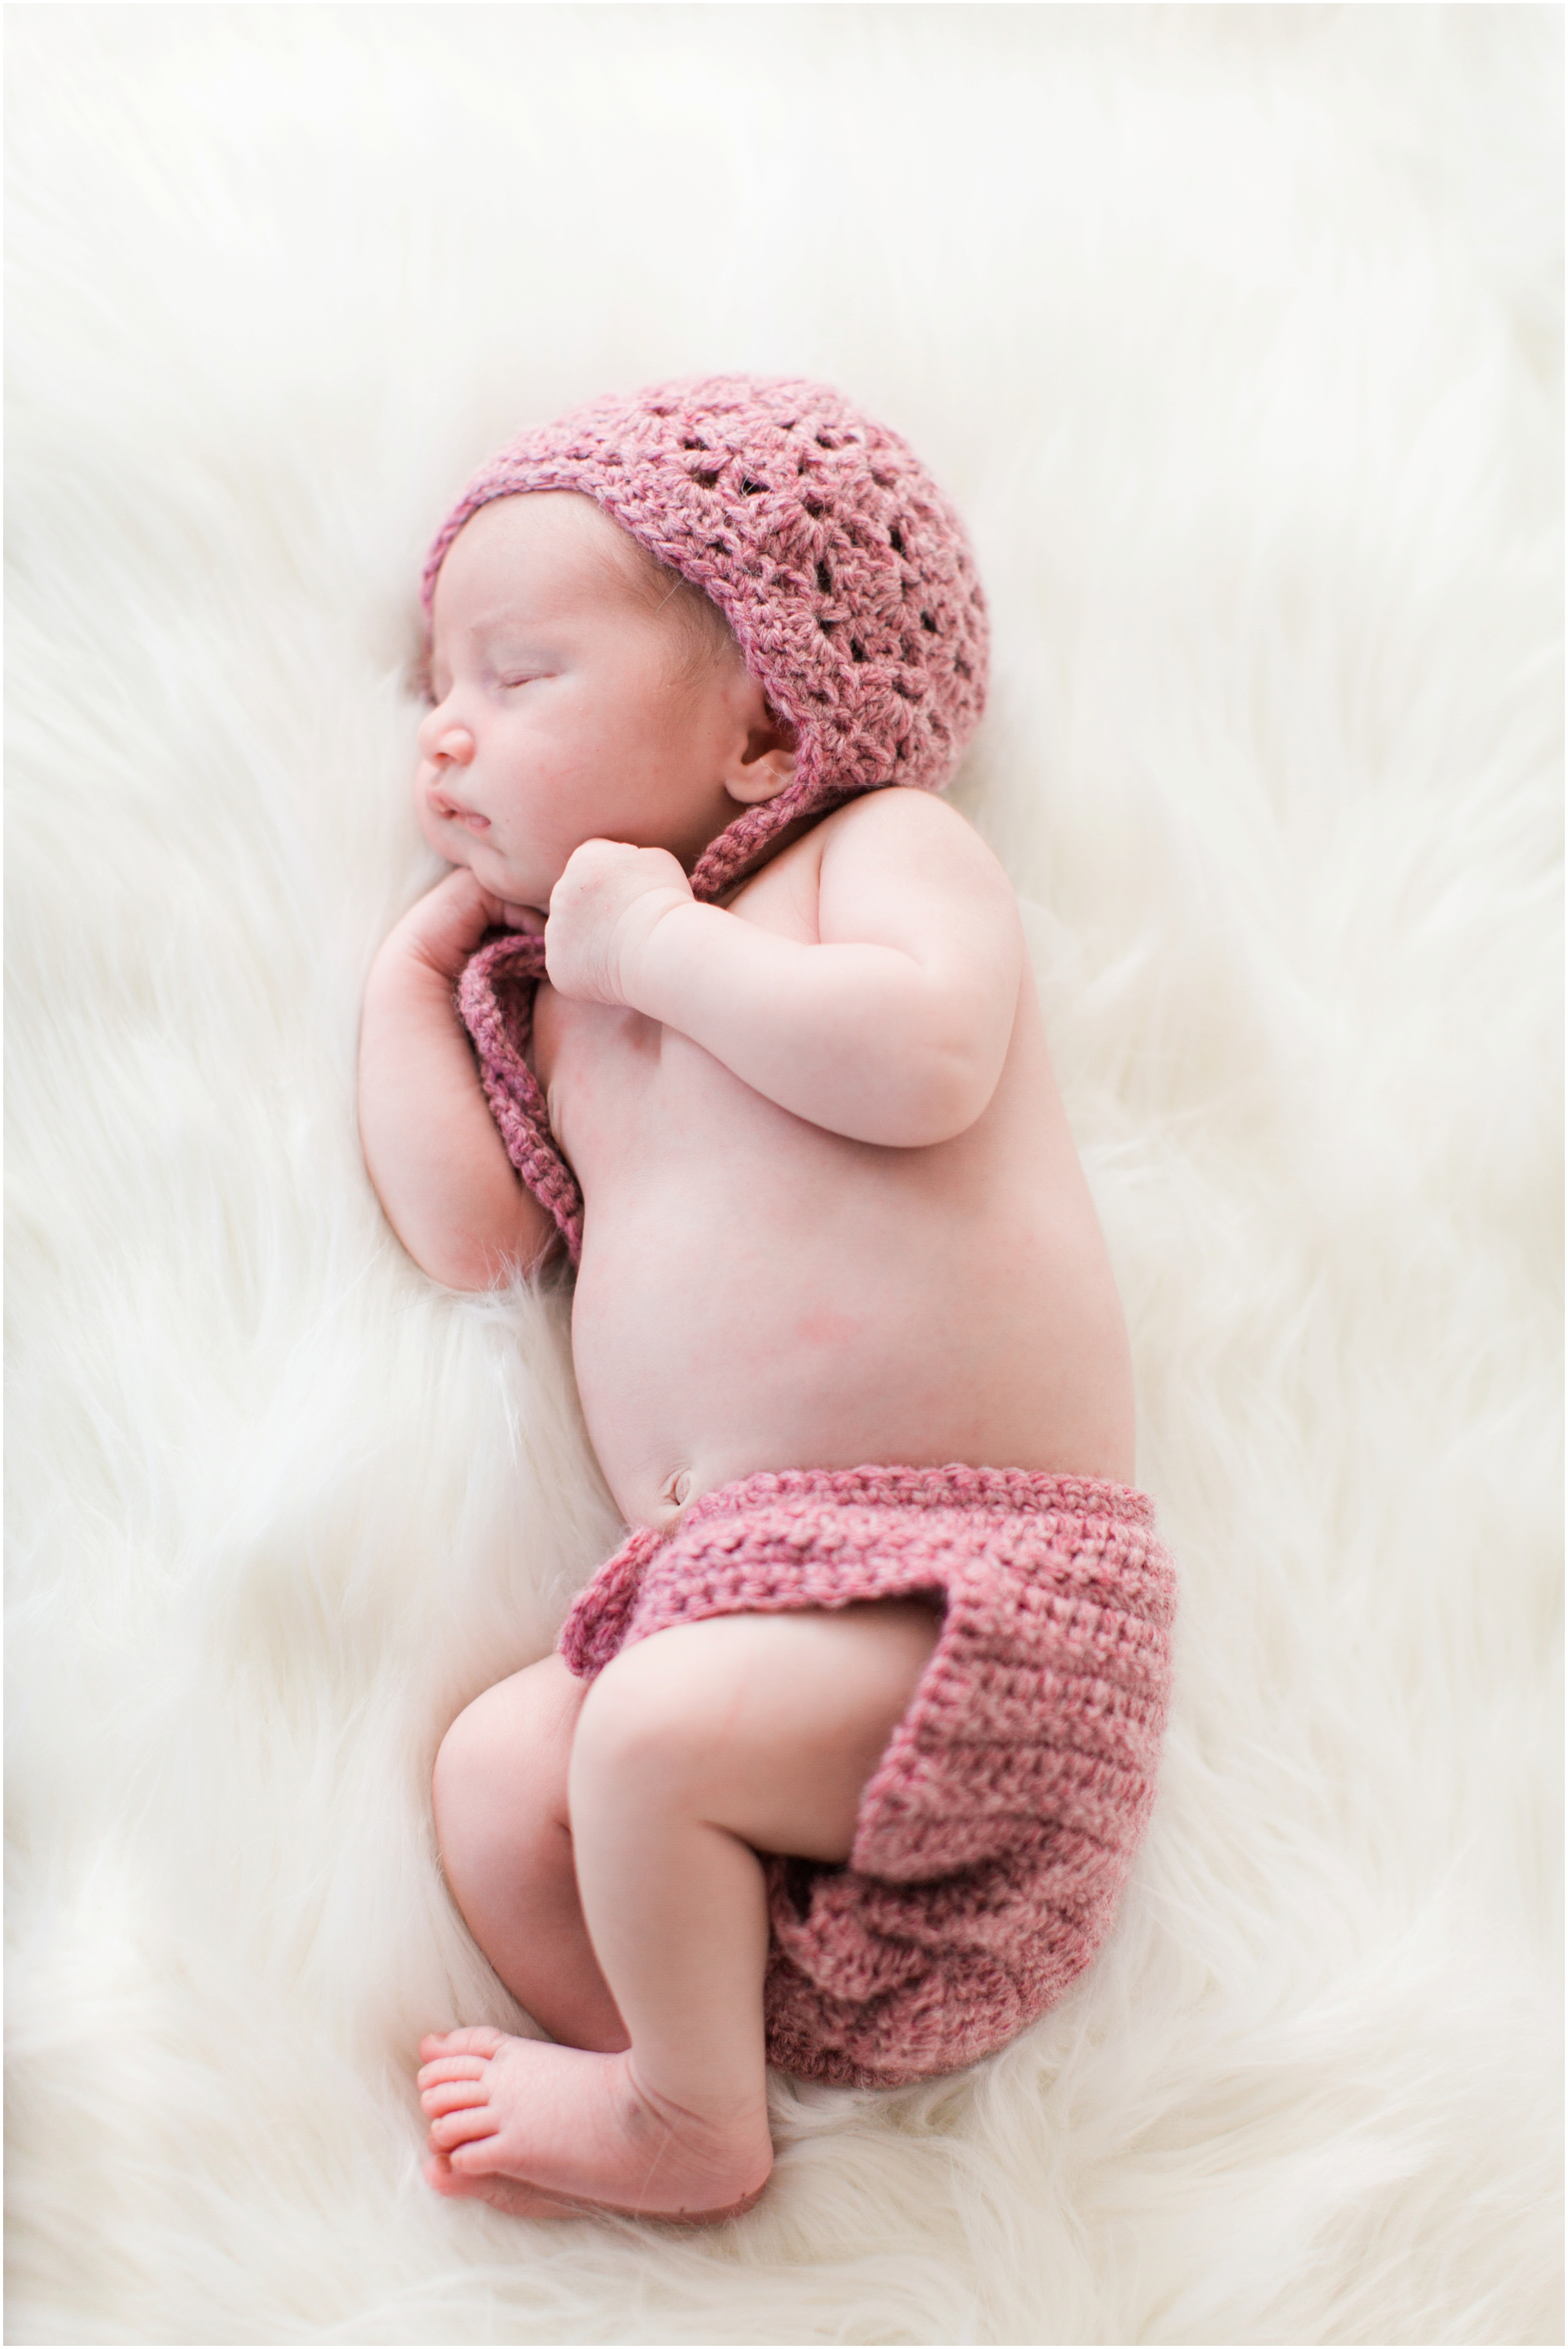 Lifestyle newborn photos by Briana Calderon Photography based in the Greater Seattle & Tacoma, WA_1059.jpg